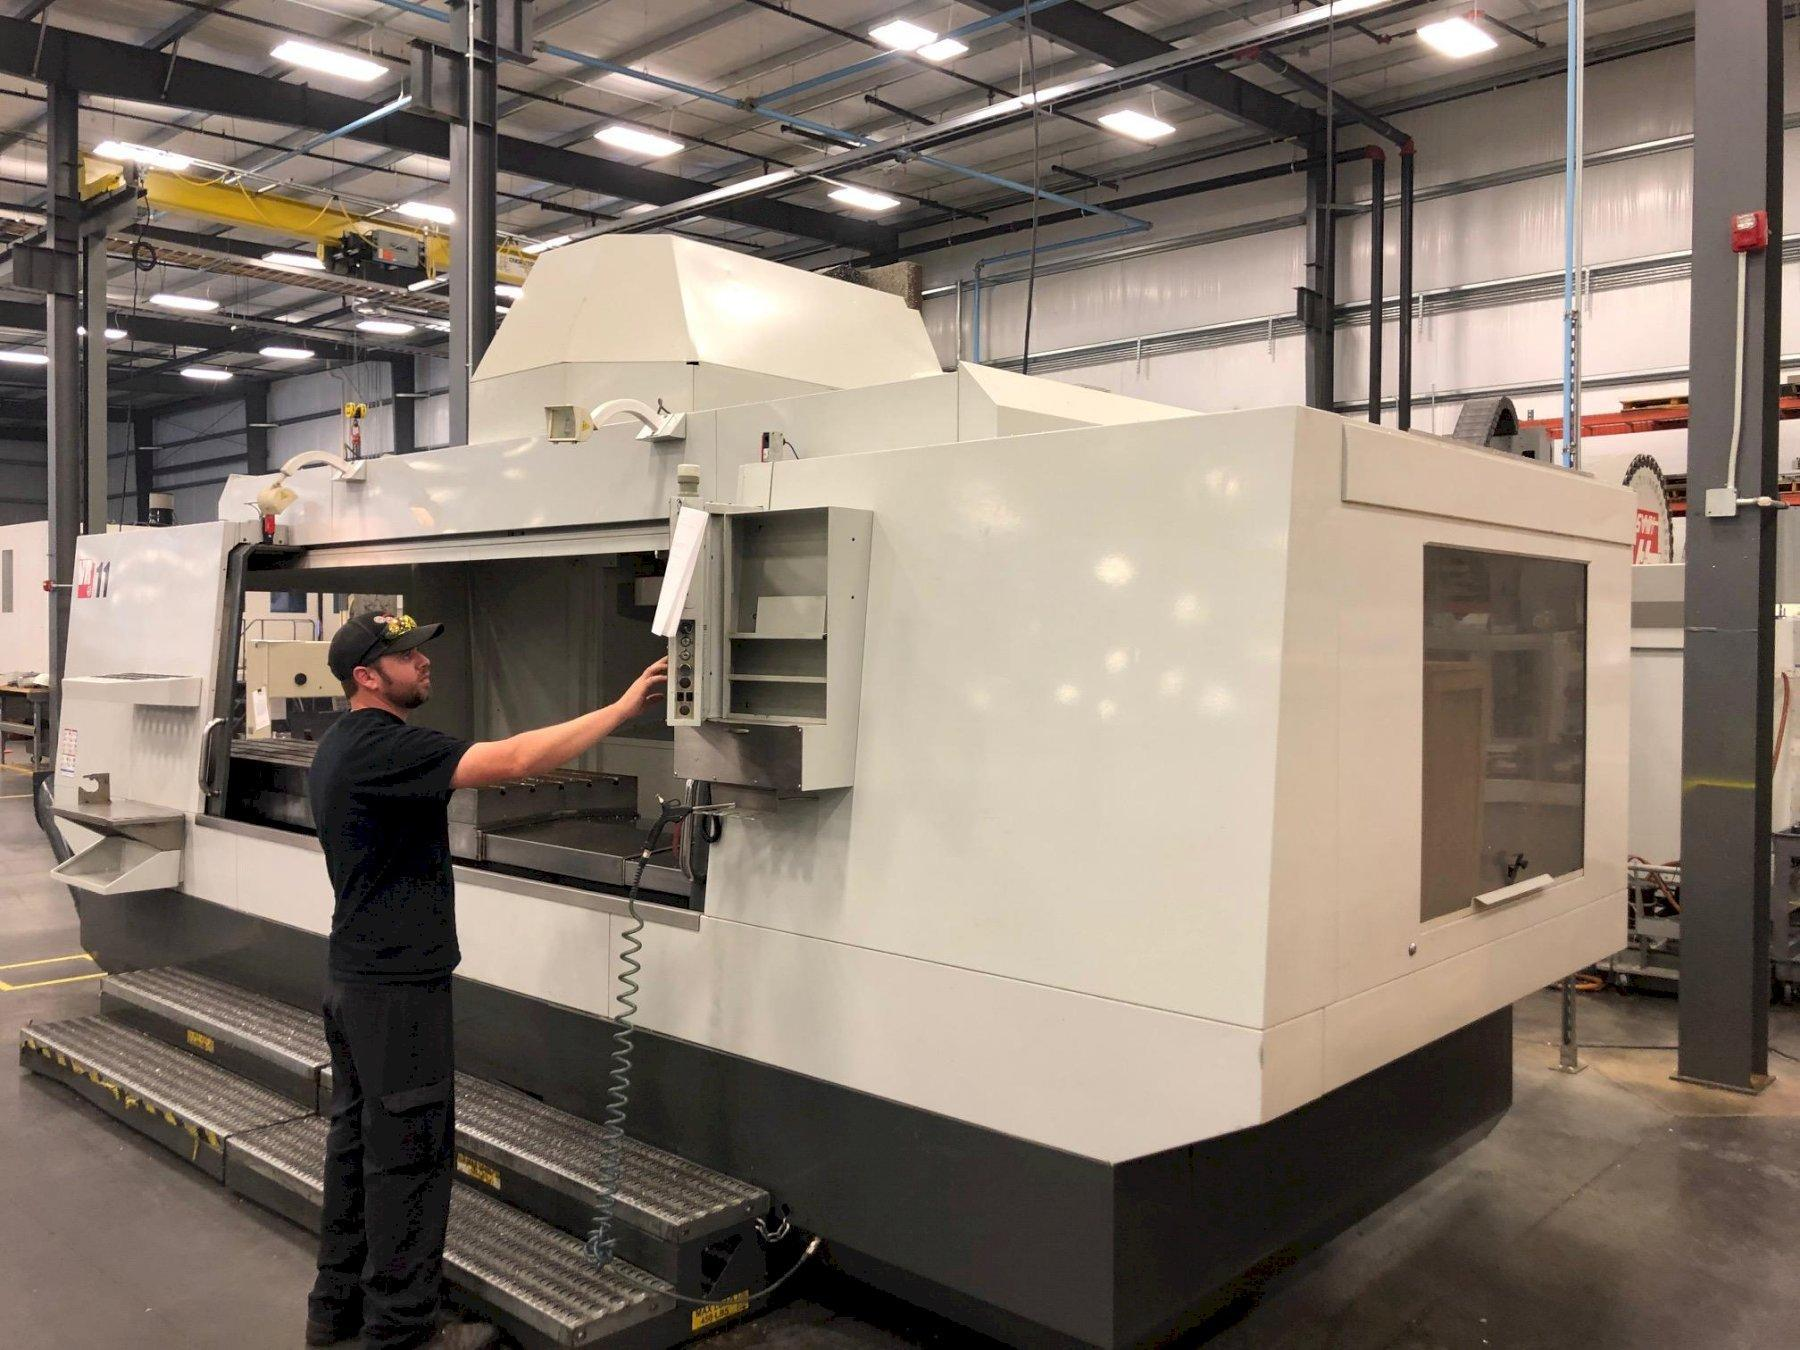 HAASHaas VR-11 5-Axis Vertical Machining Center - 2 Available